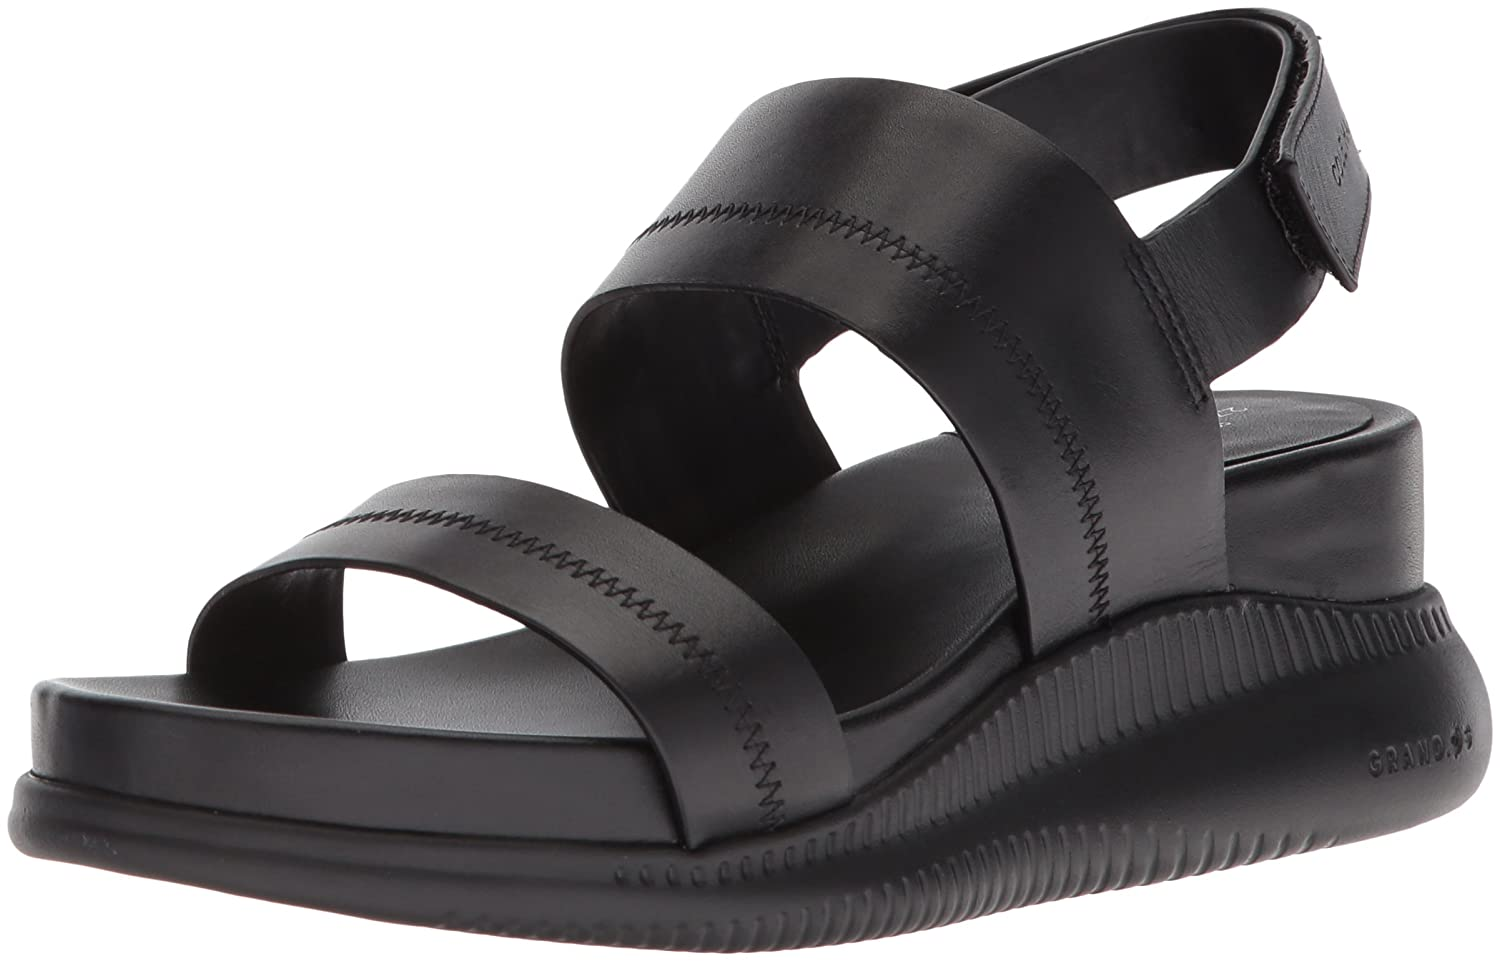 Cole Haan Women's 2.Zerogrand Slide Sport Sandal, Black Leather B073WPYG14 8.5 B(M) US|Black Leather